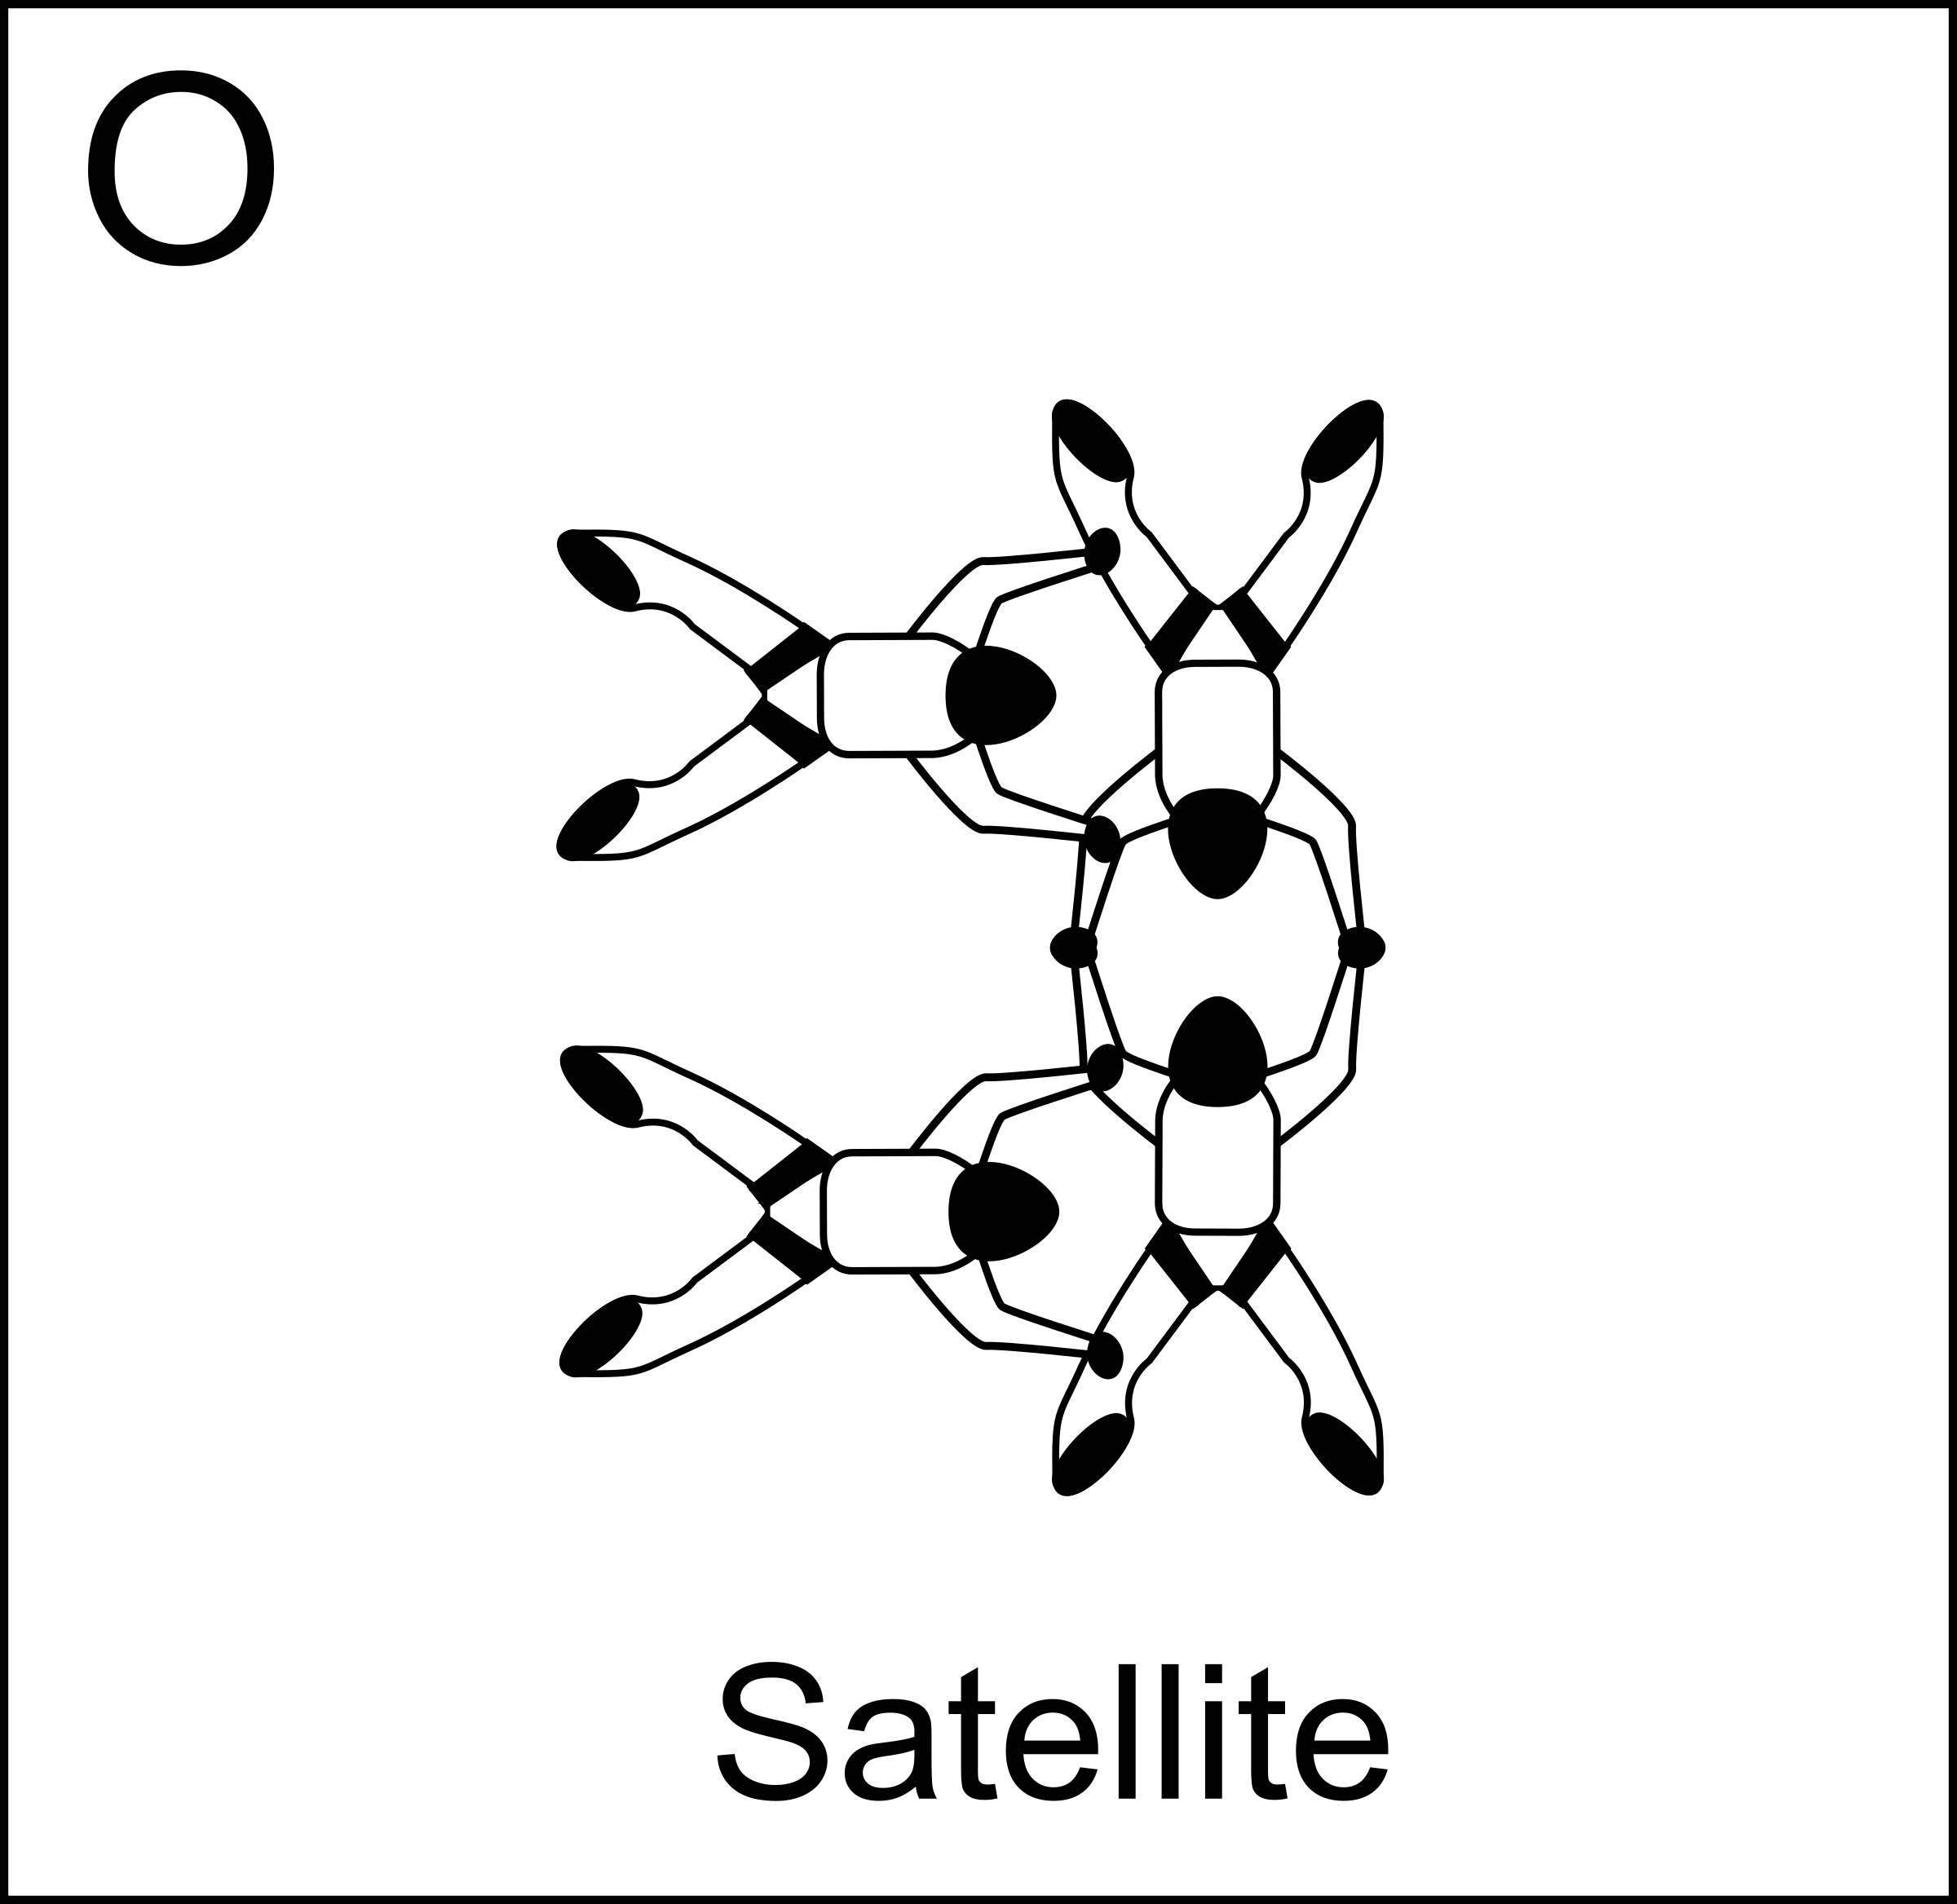 Figure O - Satellite, Vol relatif à 4, Formation Skydiving 4-Way by Fanfan